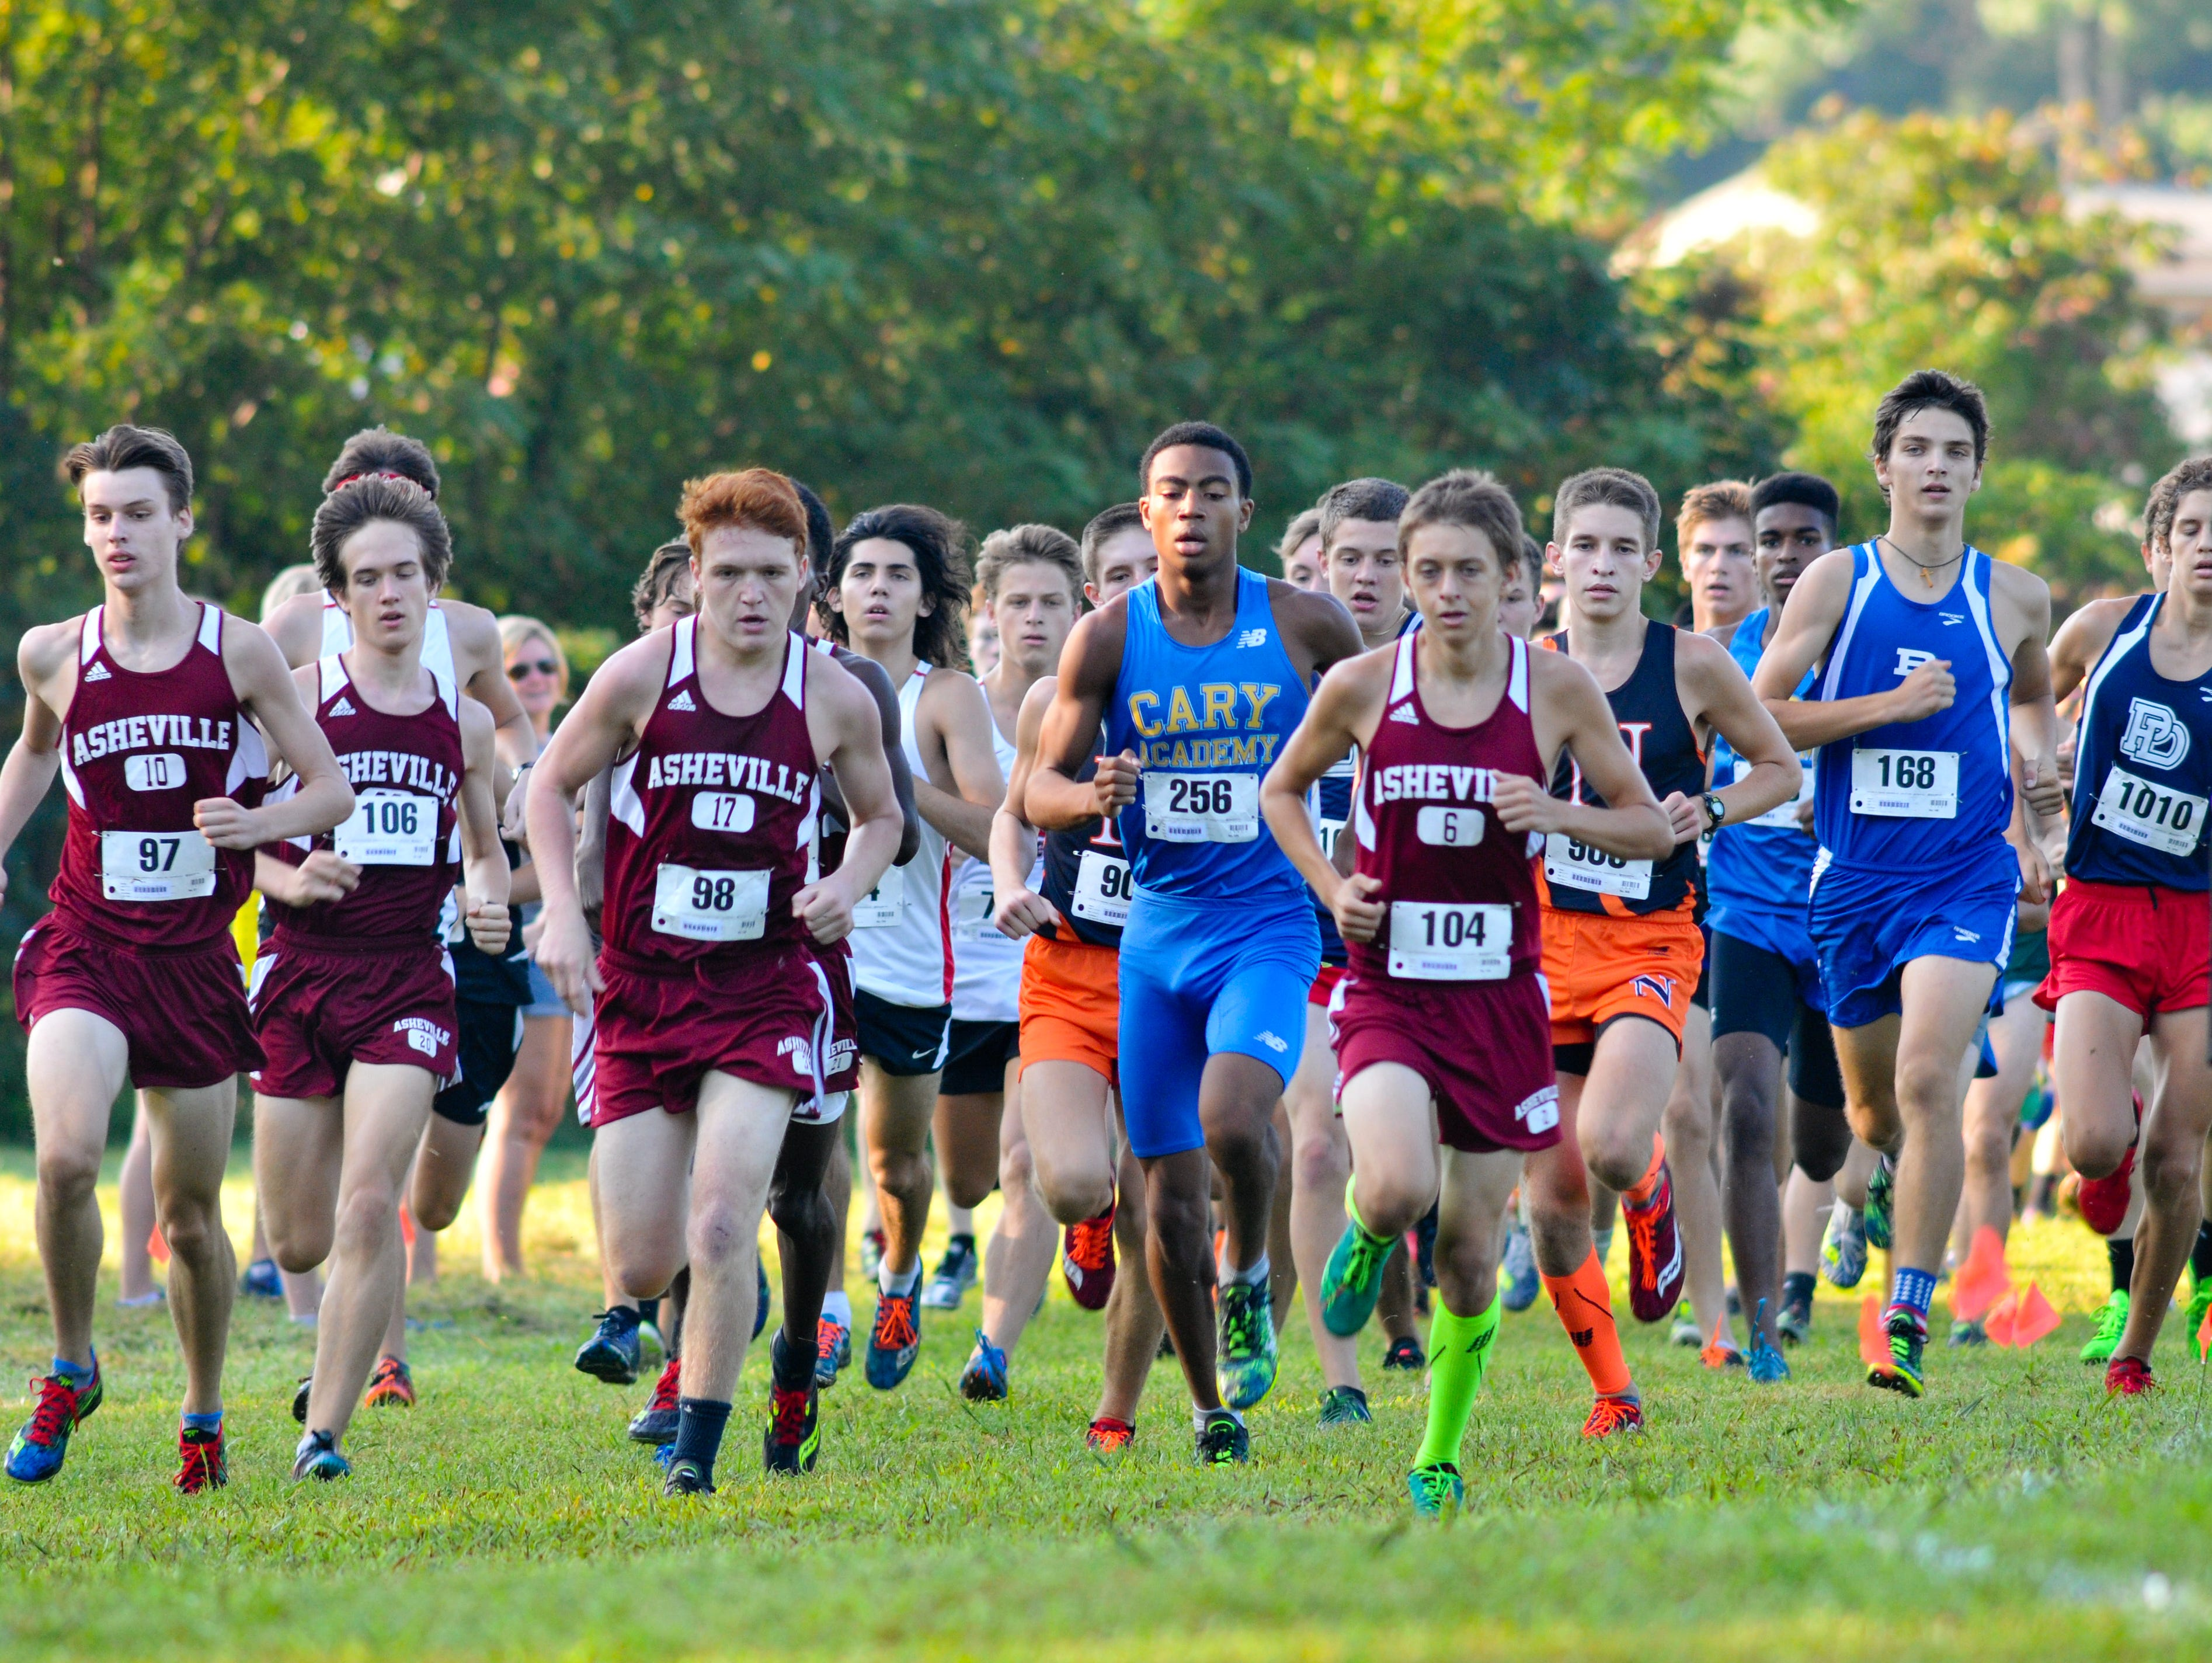 Runners, including a big pack from Asheville High, compete in the boys championship race at Saturday's Western North Carolina Cross Country Carnival in Hendersonville.